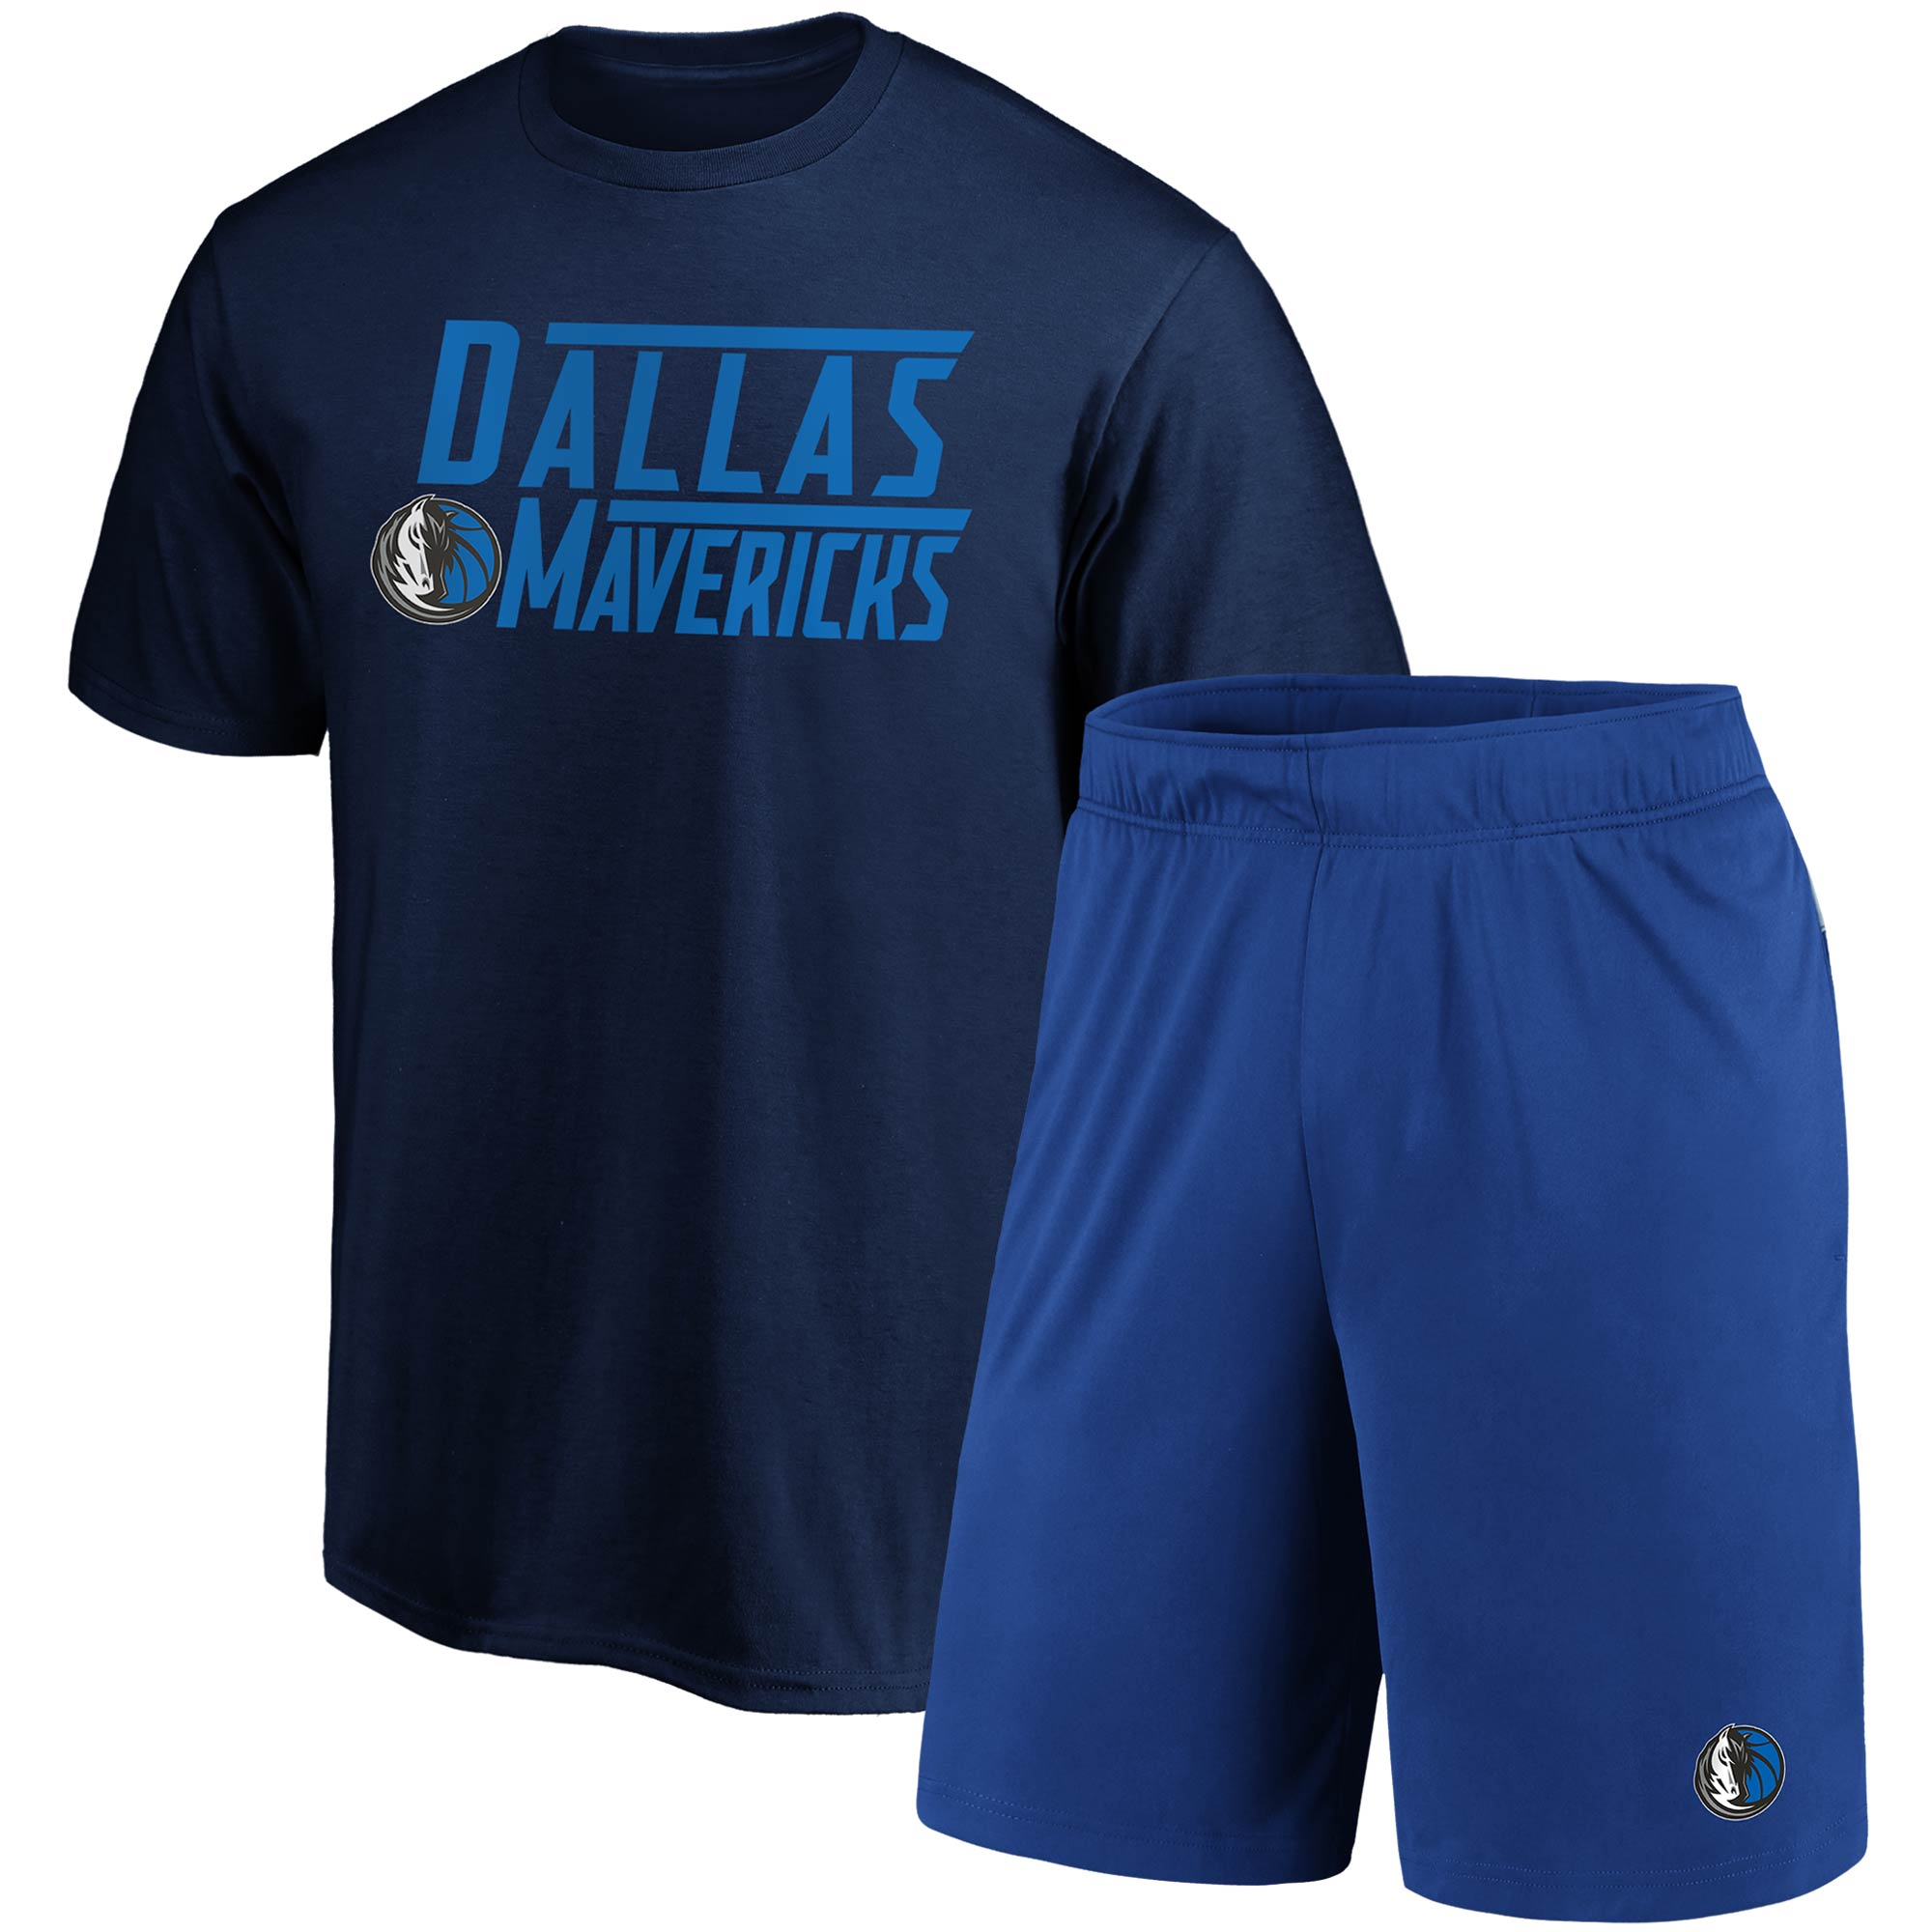 Dallas Mavericks Fanatics Branded T-Shirt & Shorts Combo Pack - Navy/Blue